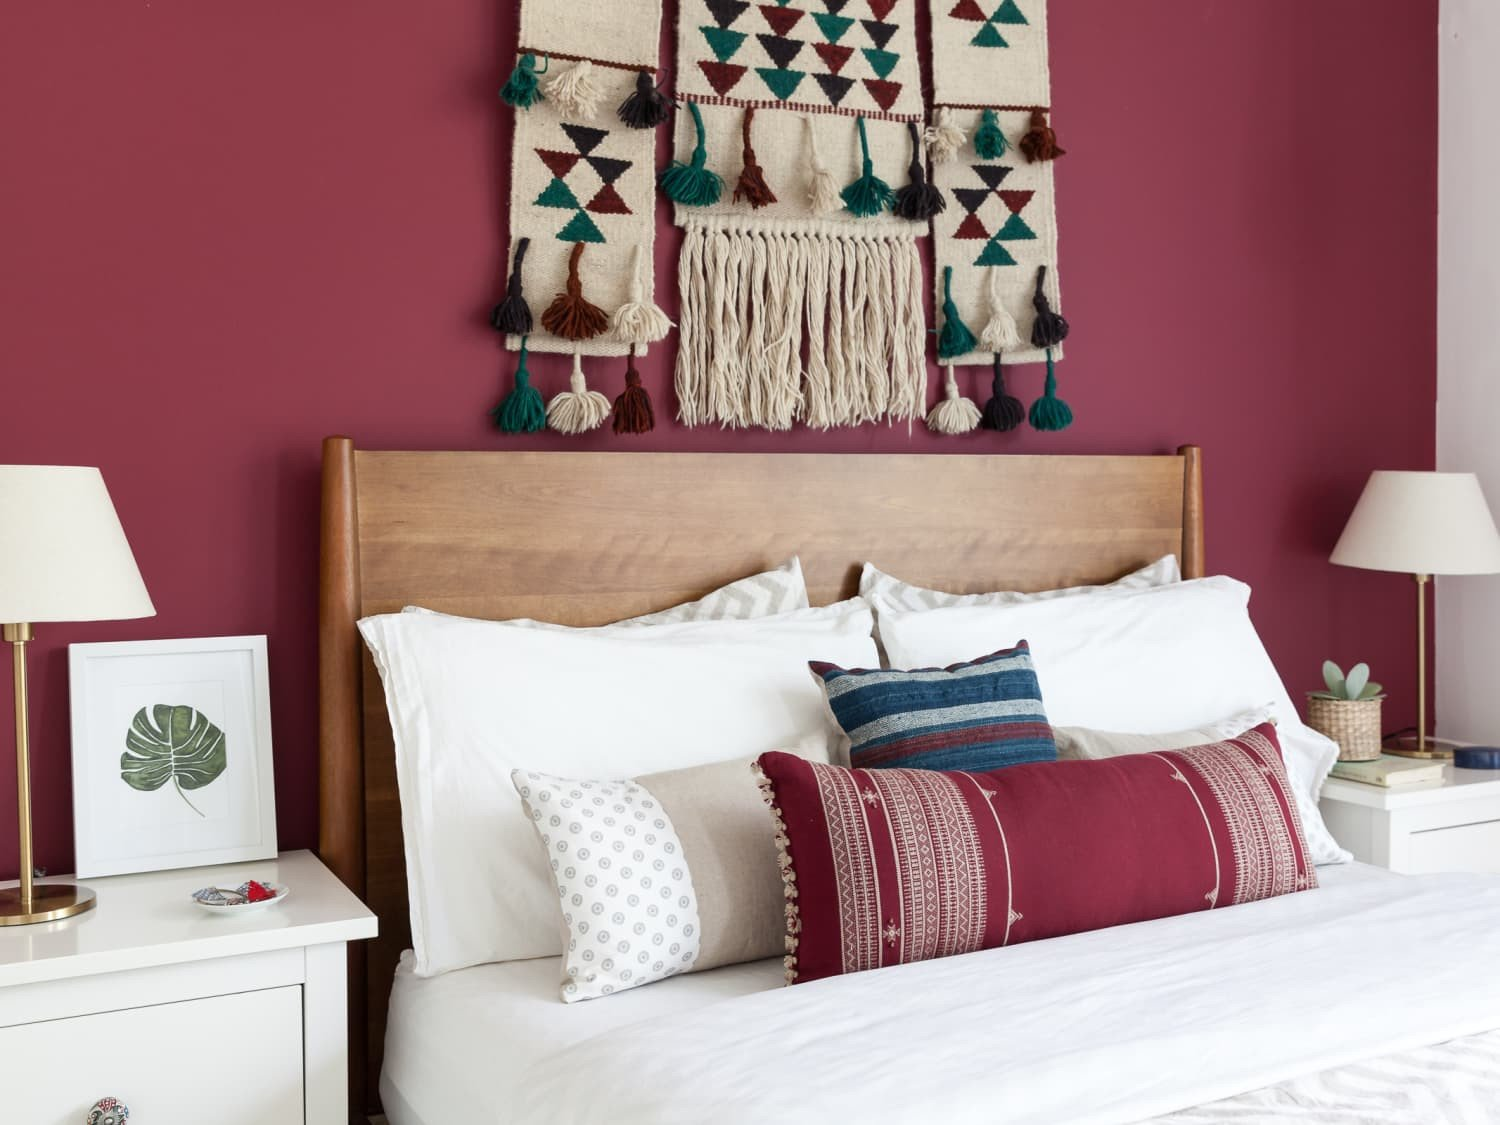 Bedroom Reading Light Wall Mounted Beautiful Ideas for What to Put Your Bed